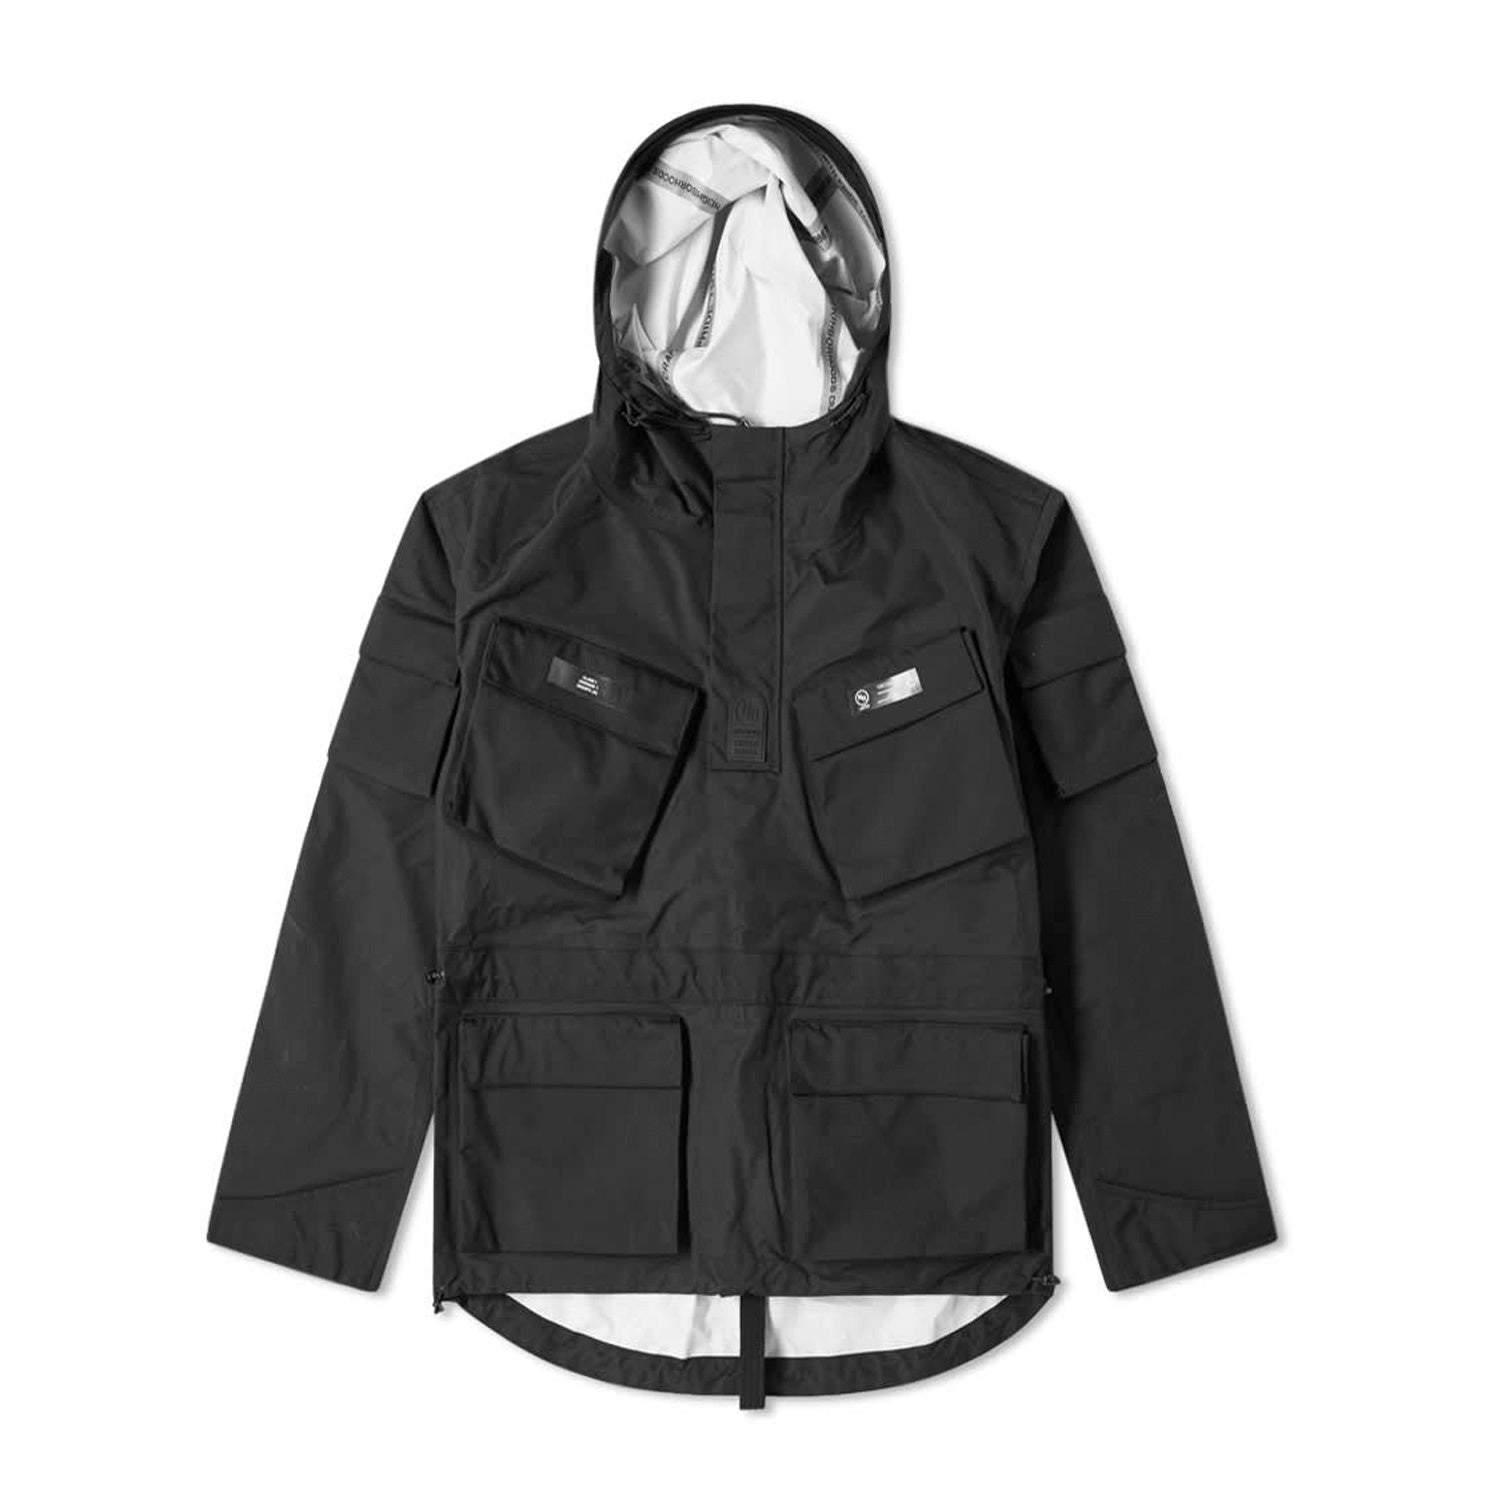 Neighborhood WWP Jacket